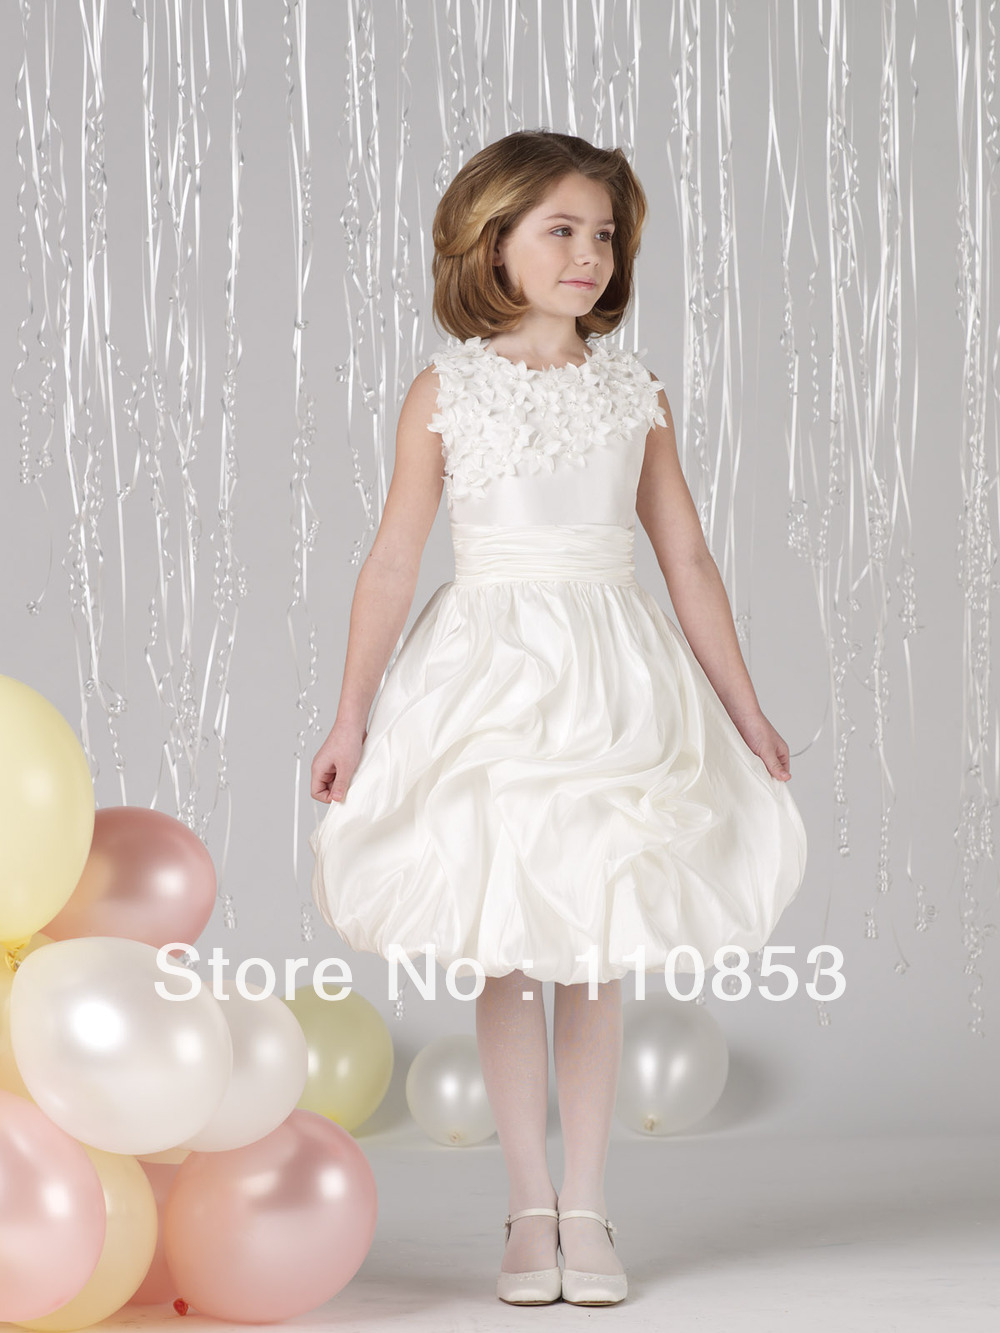 2013 Hot Sale Cute Taffeta Scalloped Appliques Ball Gown Flower Dress For Wedding  Wedding Gown